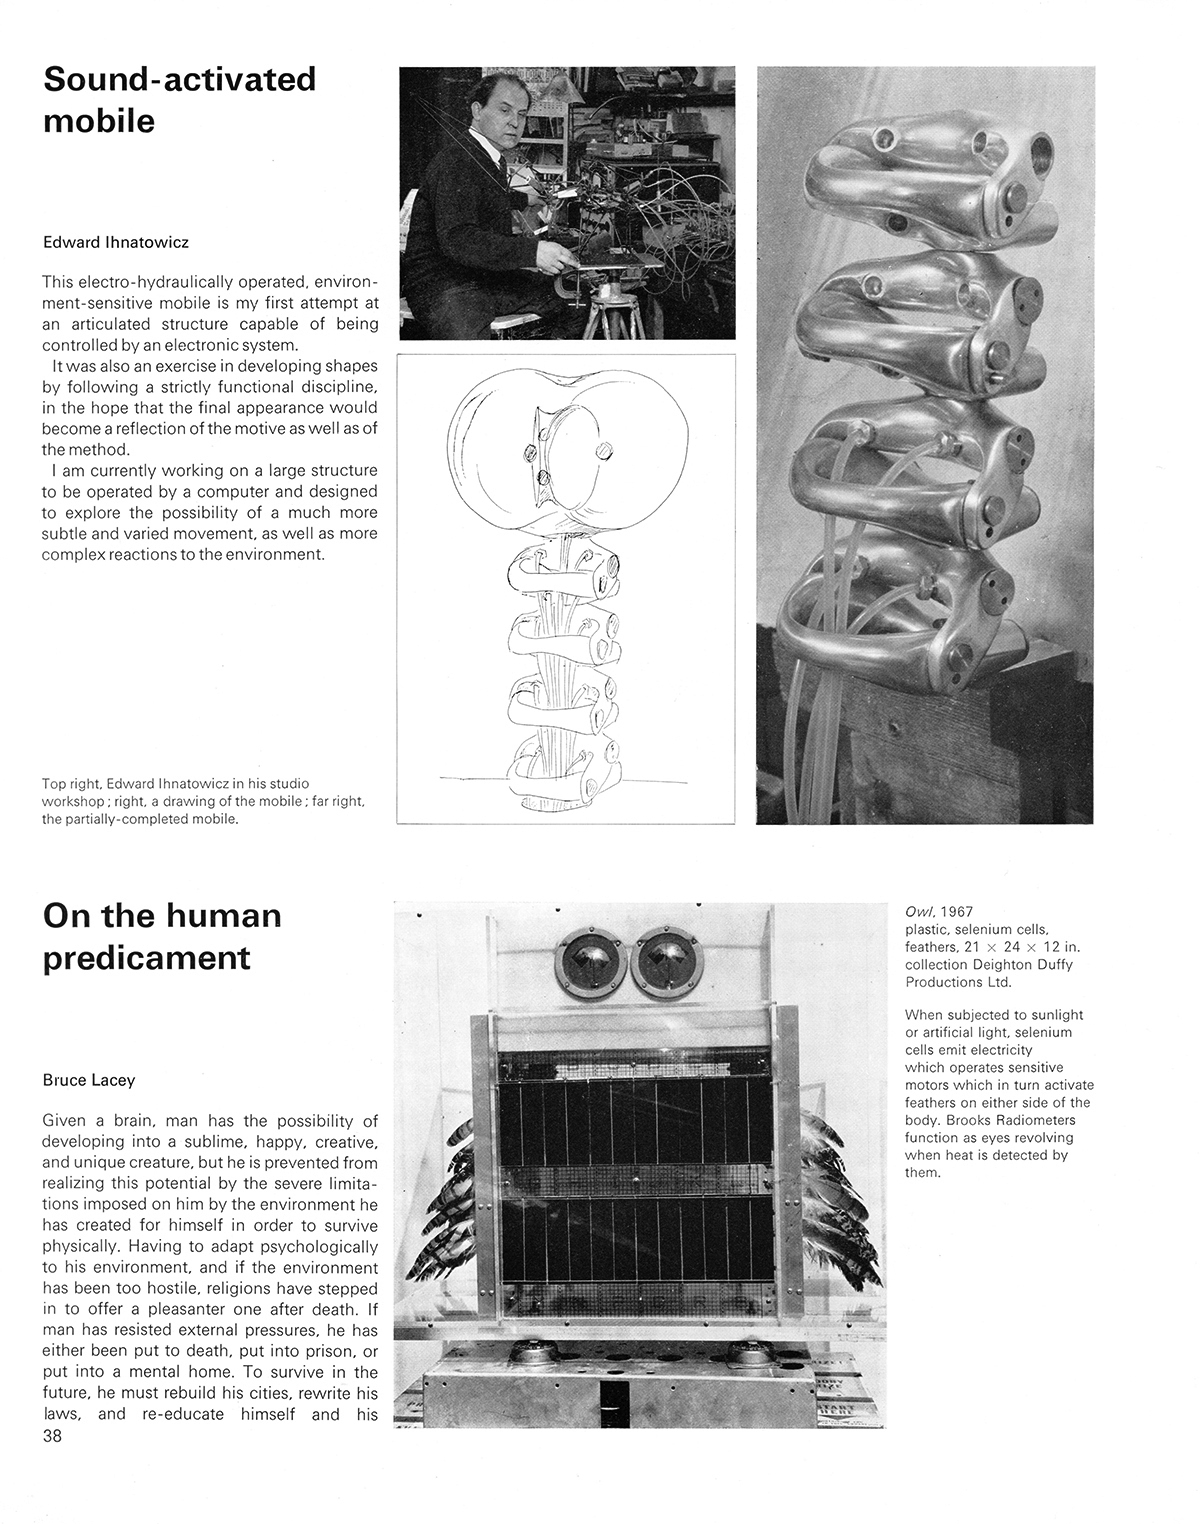 Sound-activated mobile & On the human predicament. Cybernetic Serendipity: The Computer and the Arts, Studio International Special Issue, 1968, page 38.